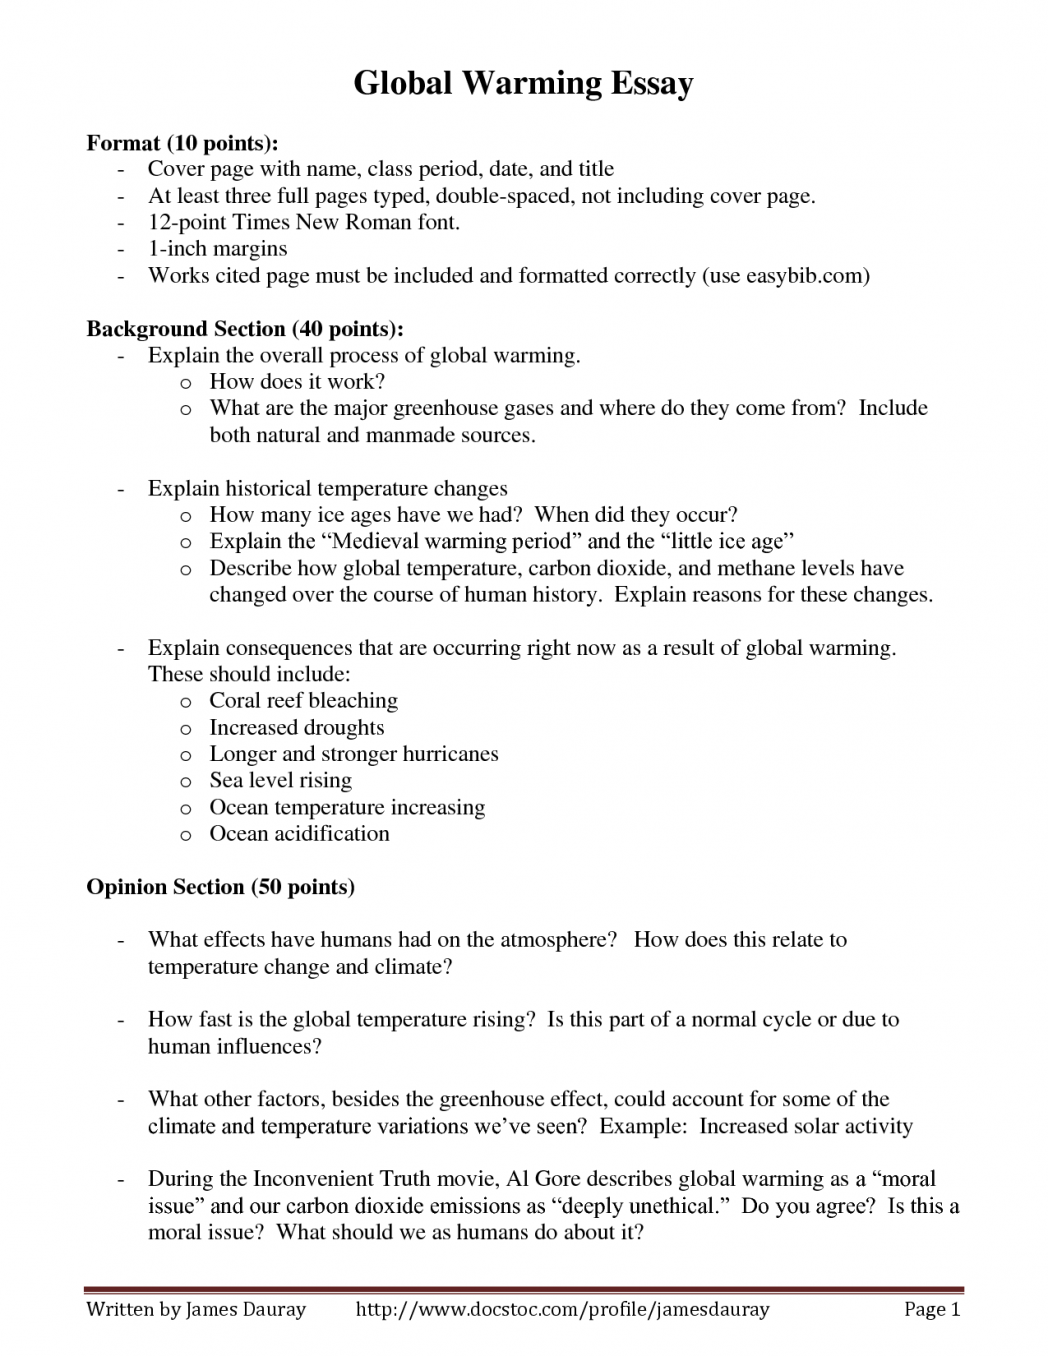 004 Essay Example On Effects Of Global Warming Custom Paper Academic Writing Best Essays Causes L And Report In Hindi Pdf Topic An Argumentative Impressive With Introduction Conclusion Greenhouse Effect 600 Words Full